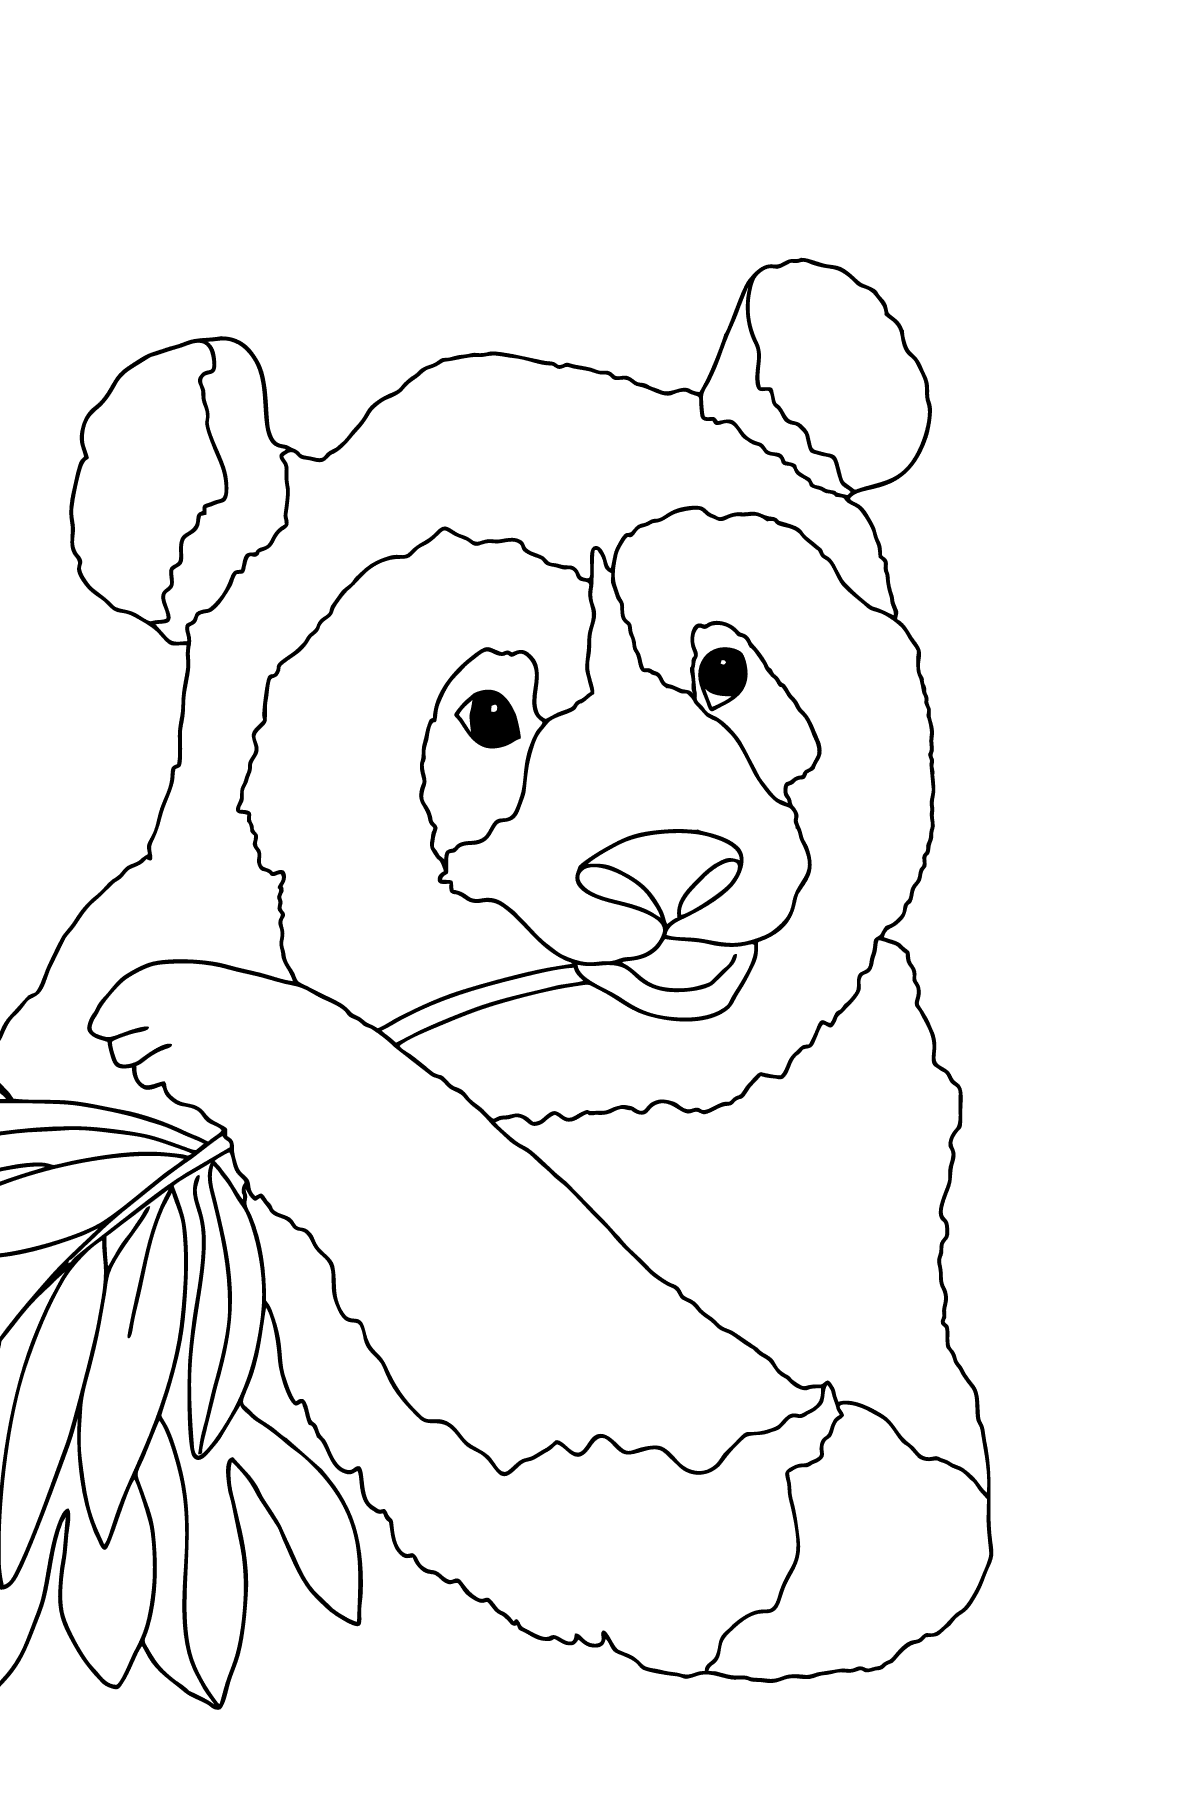 Coloring Page - A Panda is Eating Bamboo Stems and Leaves - Coloring Pages for Children